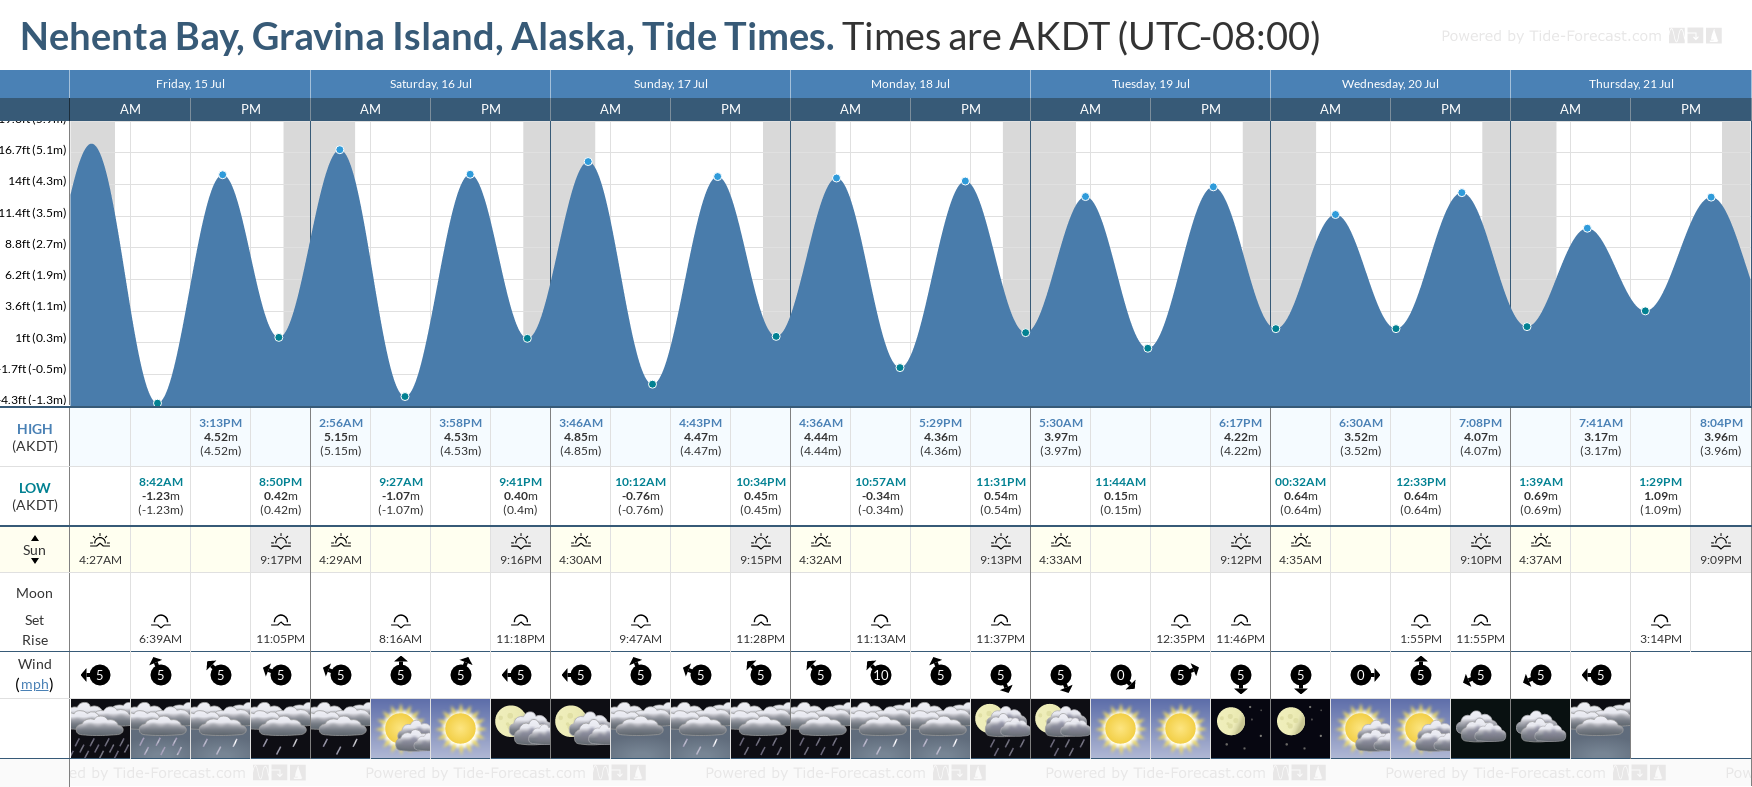 Nehenta Bay, Gravina Island, Alaska Tide Chart including high and low tide tide times for the next 7 days